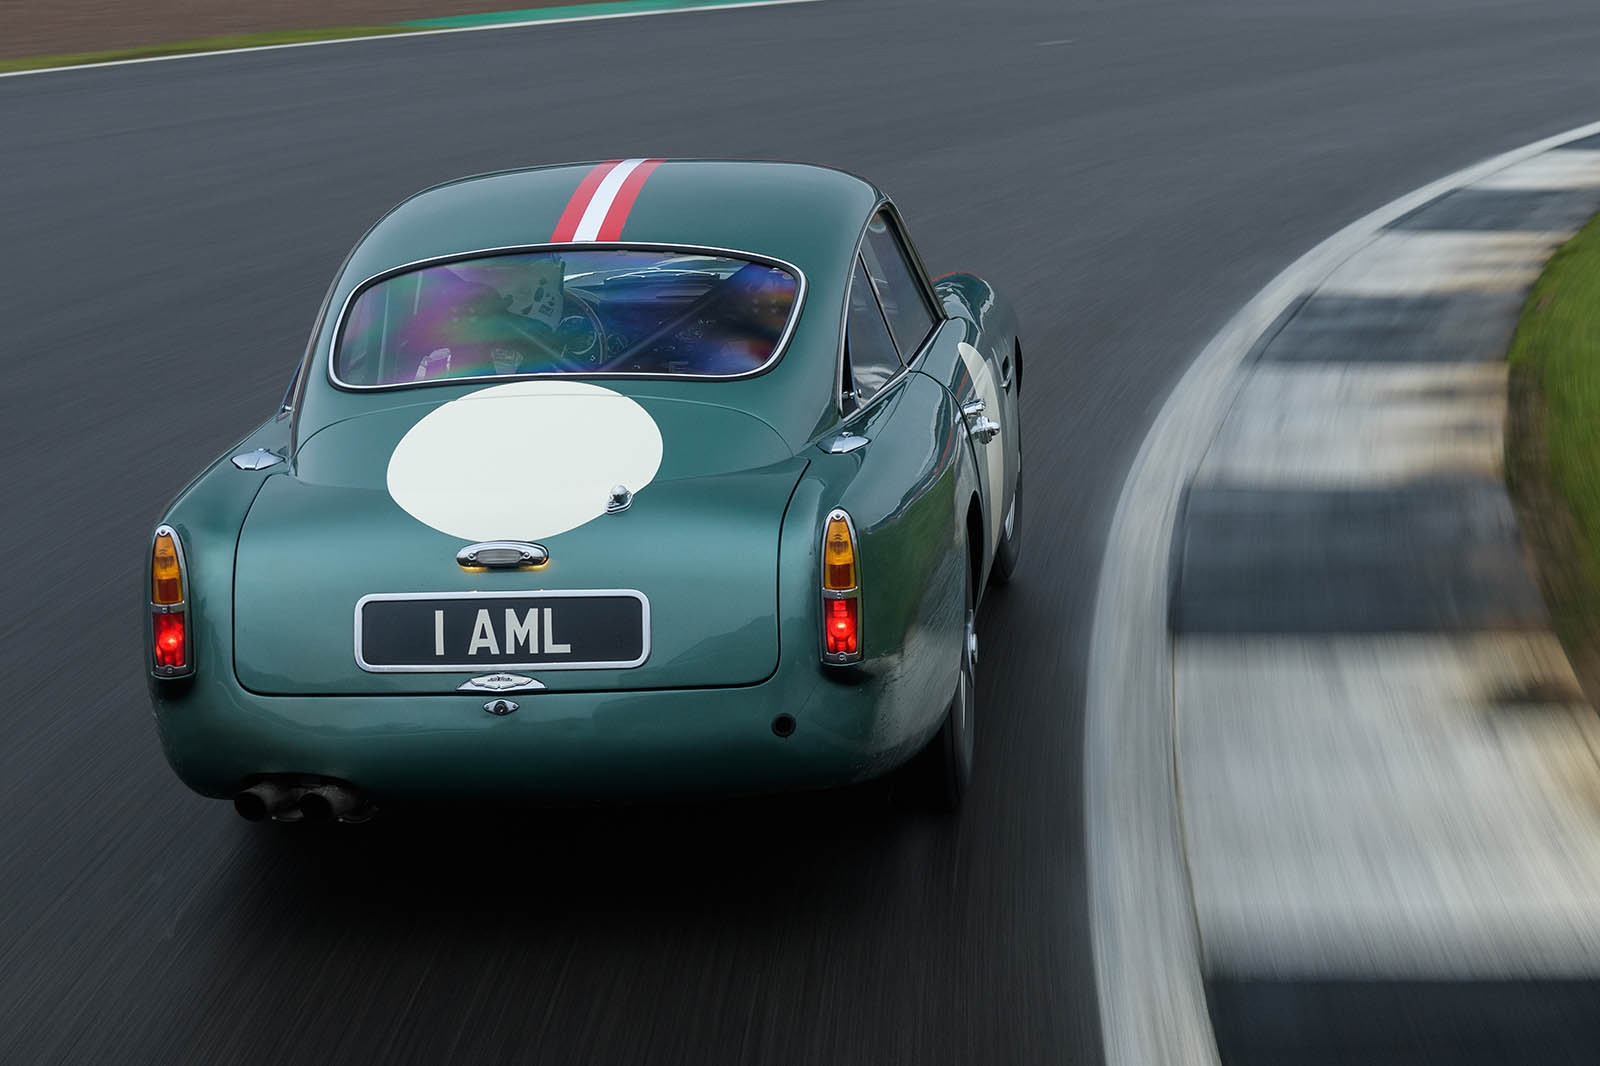 Aston Martin Db4 Gt Driving The 1 5m Recreation Of A Classic Autocar